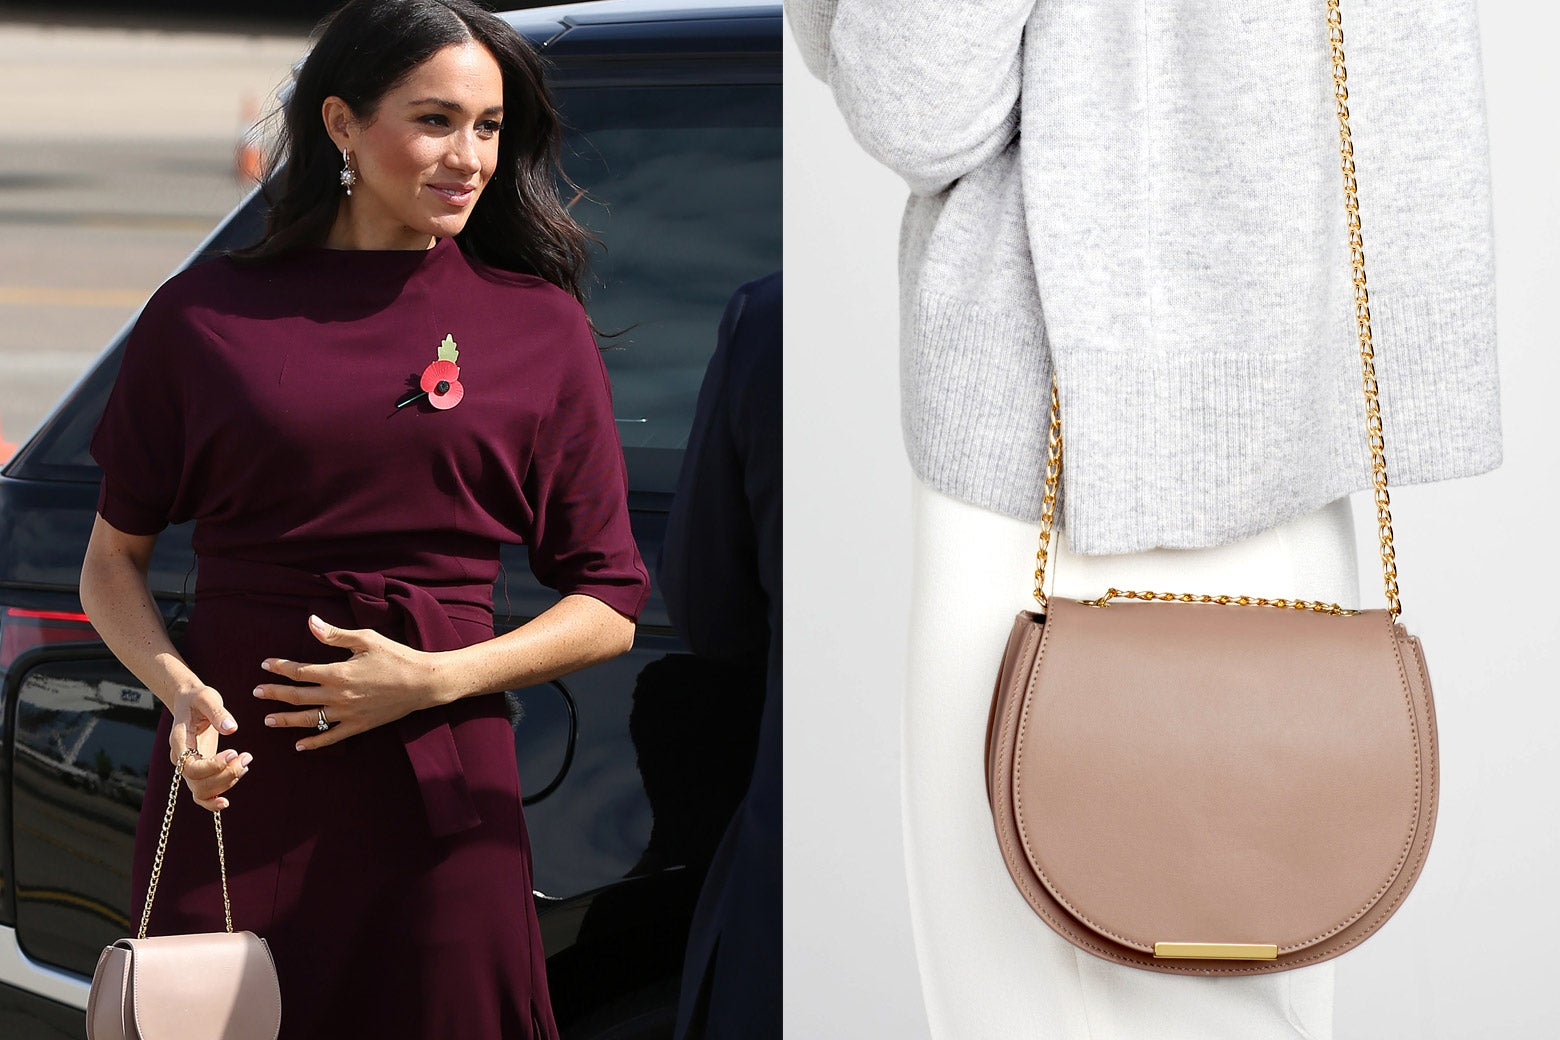 Side-by-side of Duchess of Sussex Meghan Markle, as seen holding a Cuyana saddle bag, and a Cuyana product image of the bag.